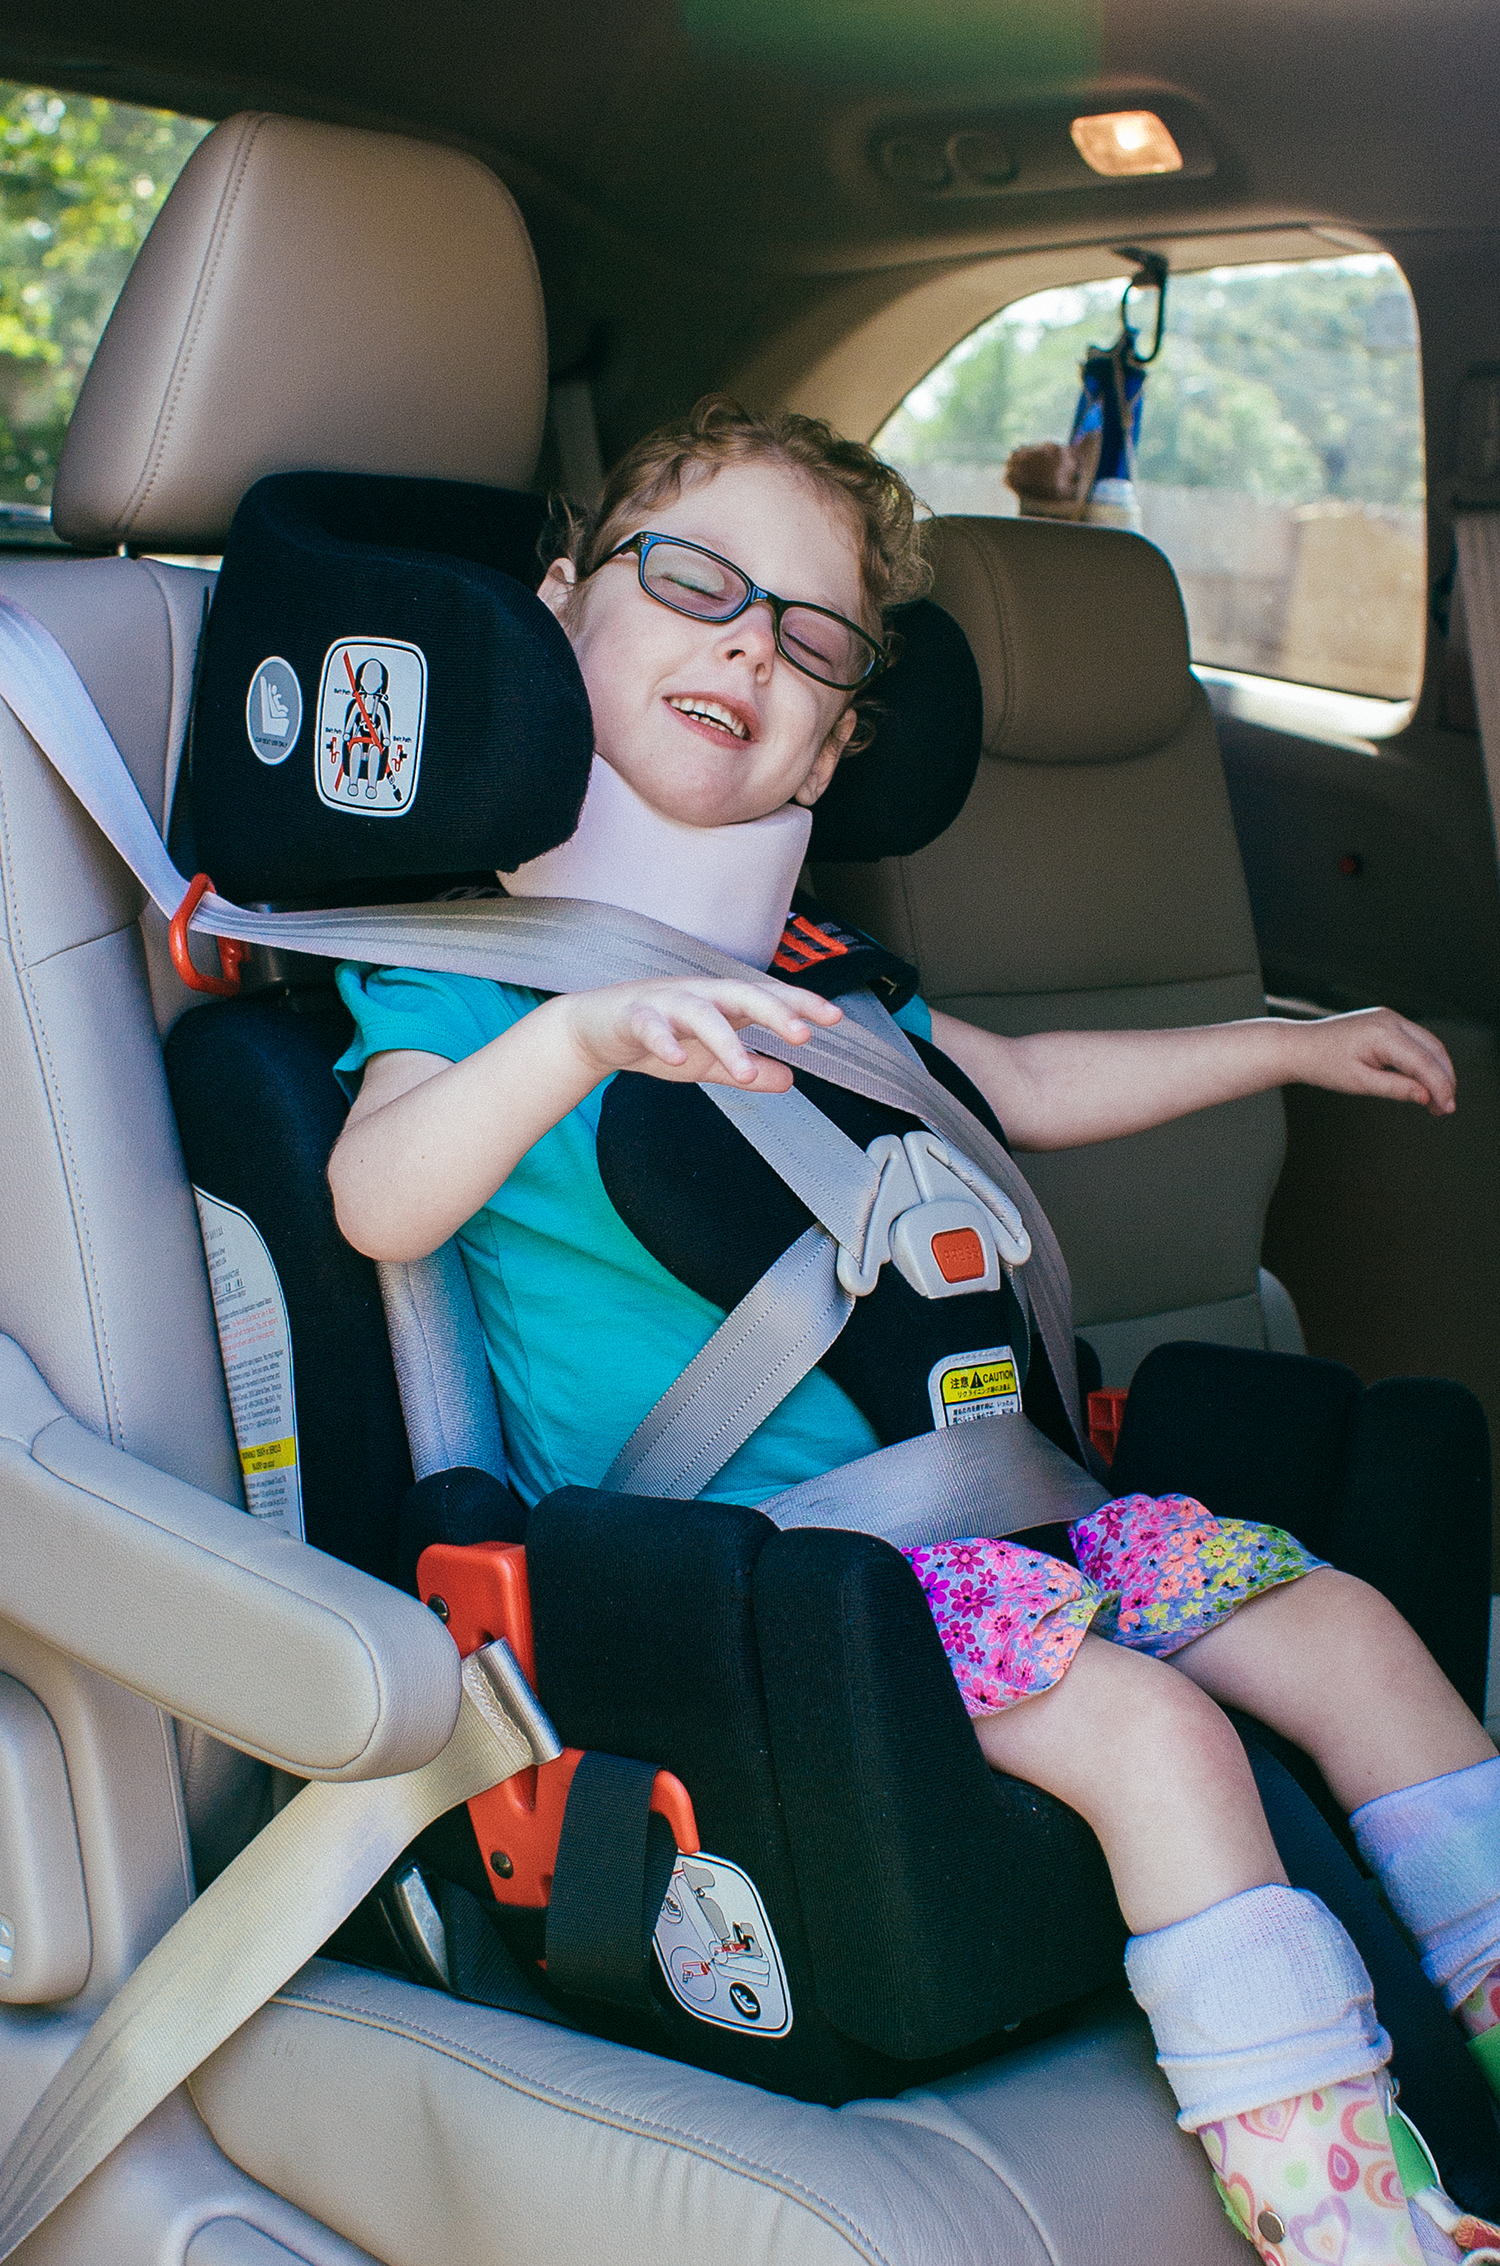 Special Needs Car Seat vs Typical Car Seat  Made of Gray